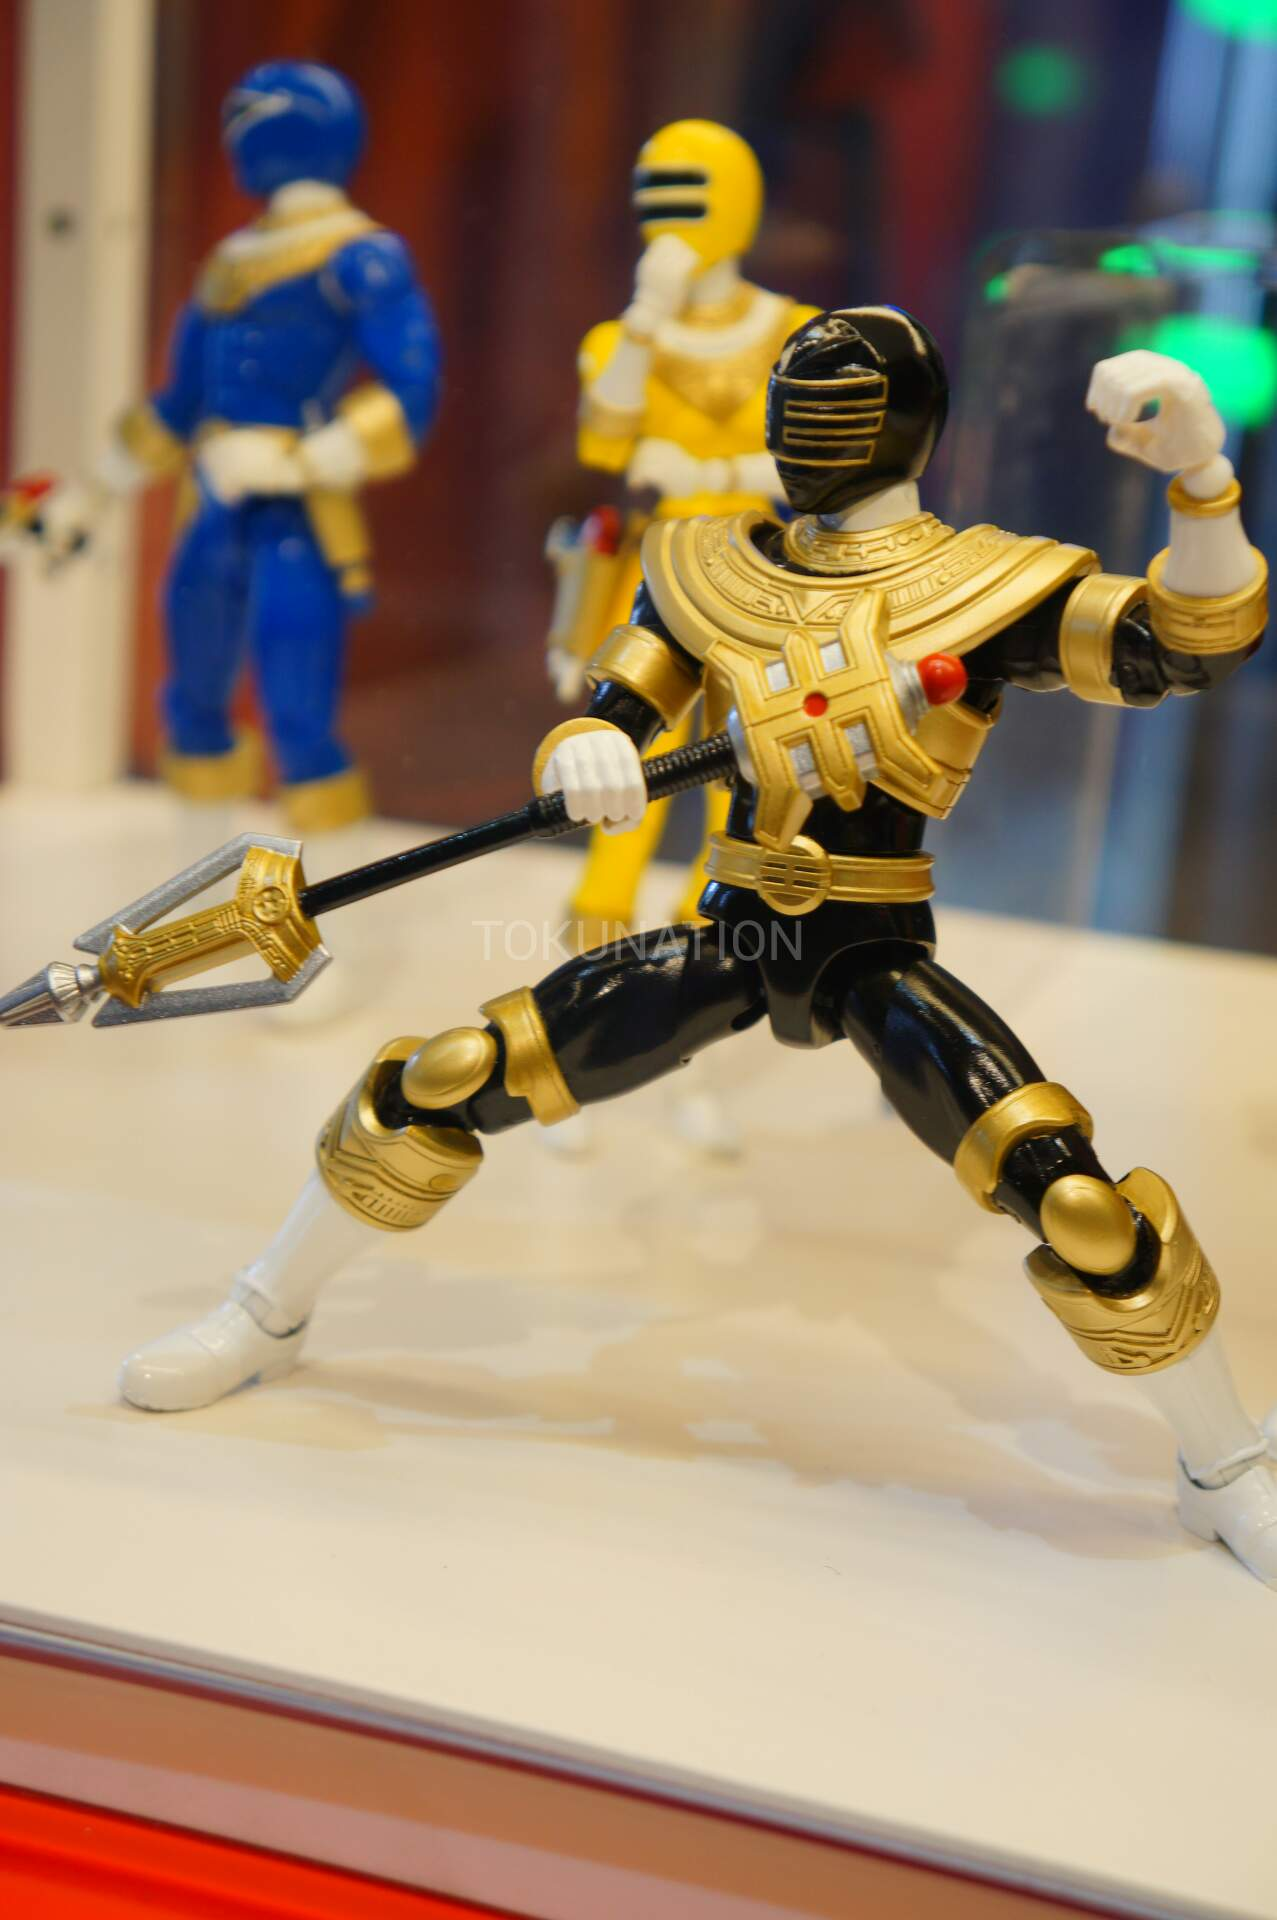 SDCC 2017 - Power Rangers Toys from Bandai America ...